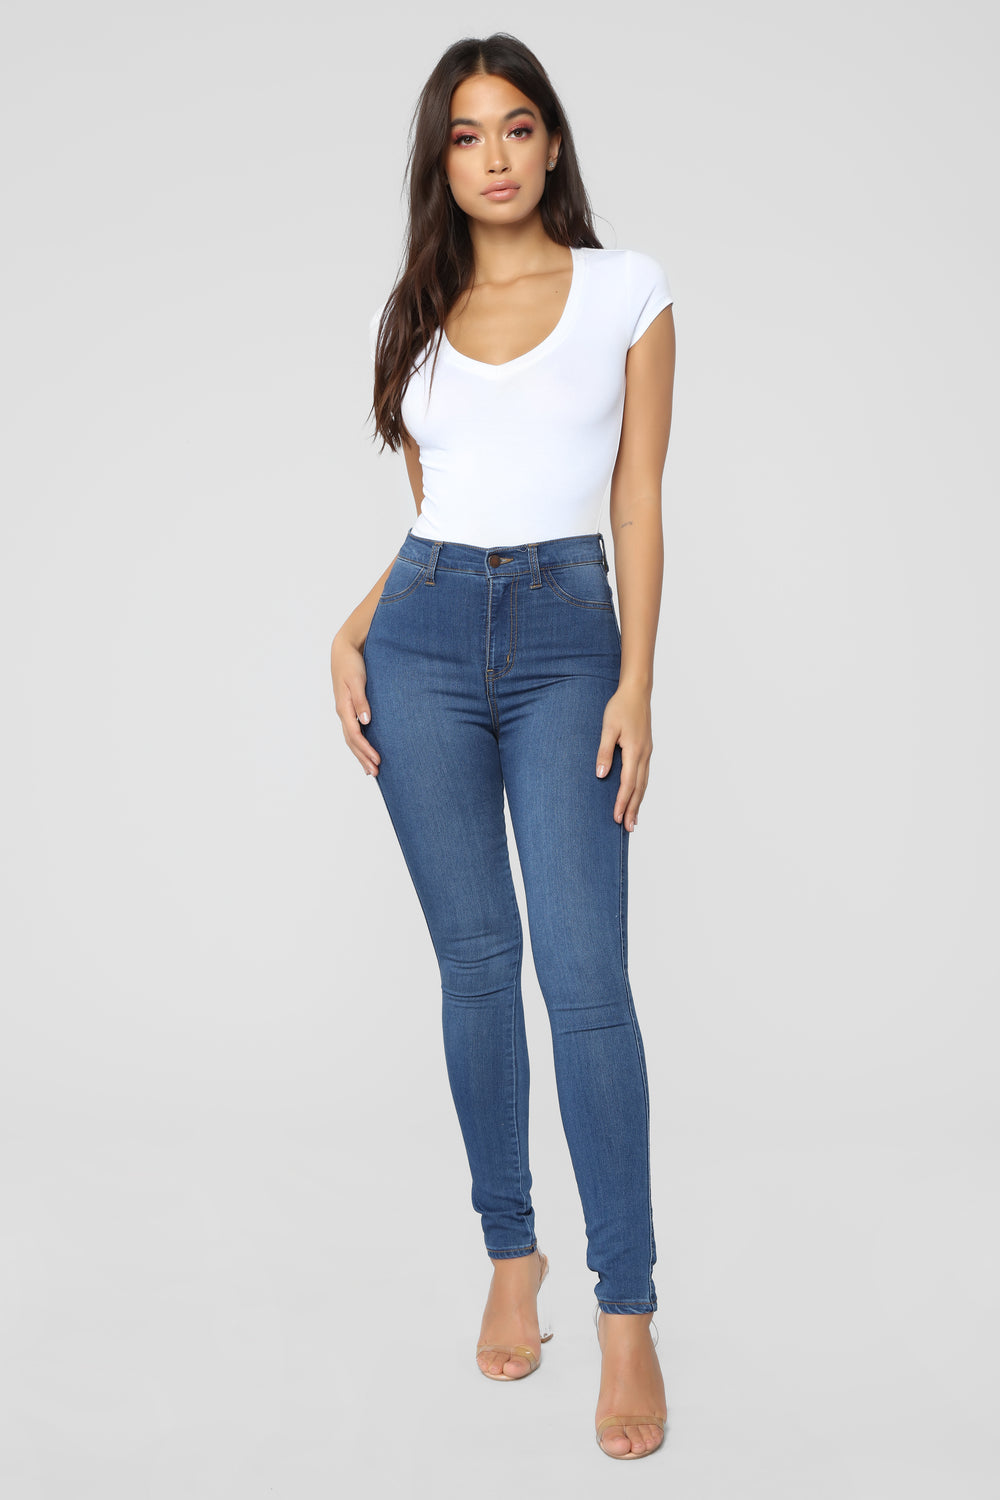 Lily V Neck Top - White